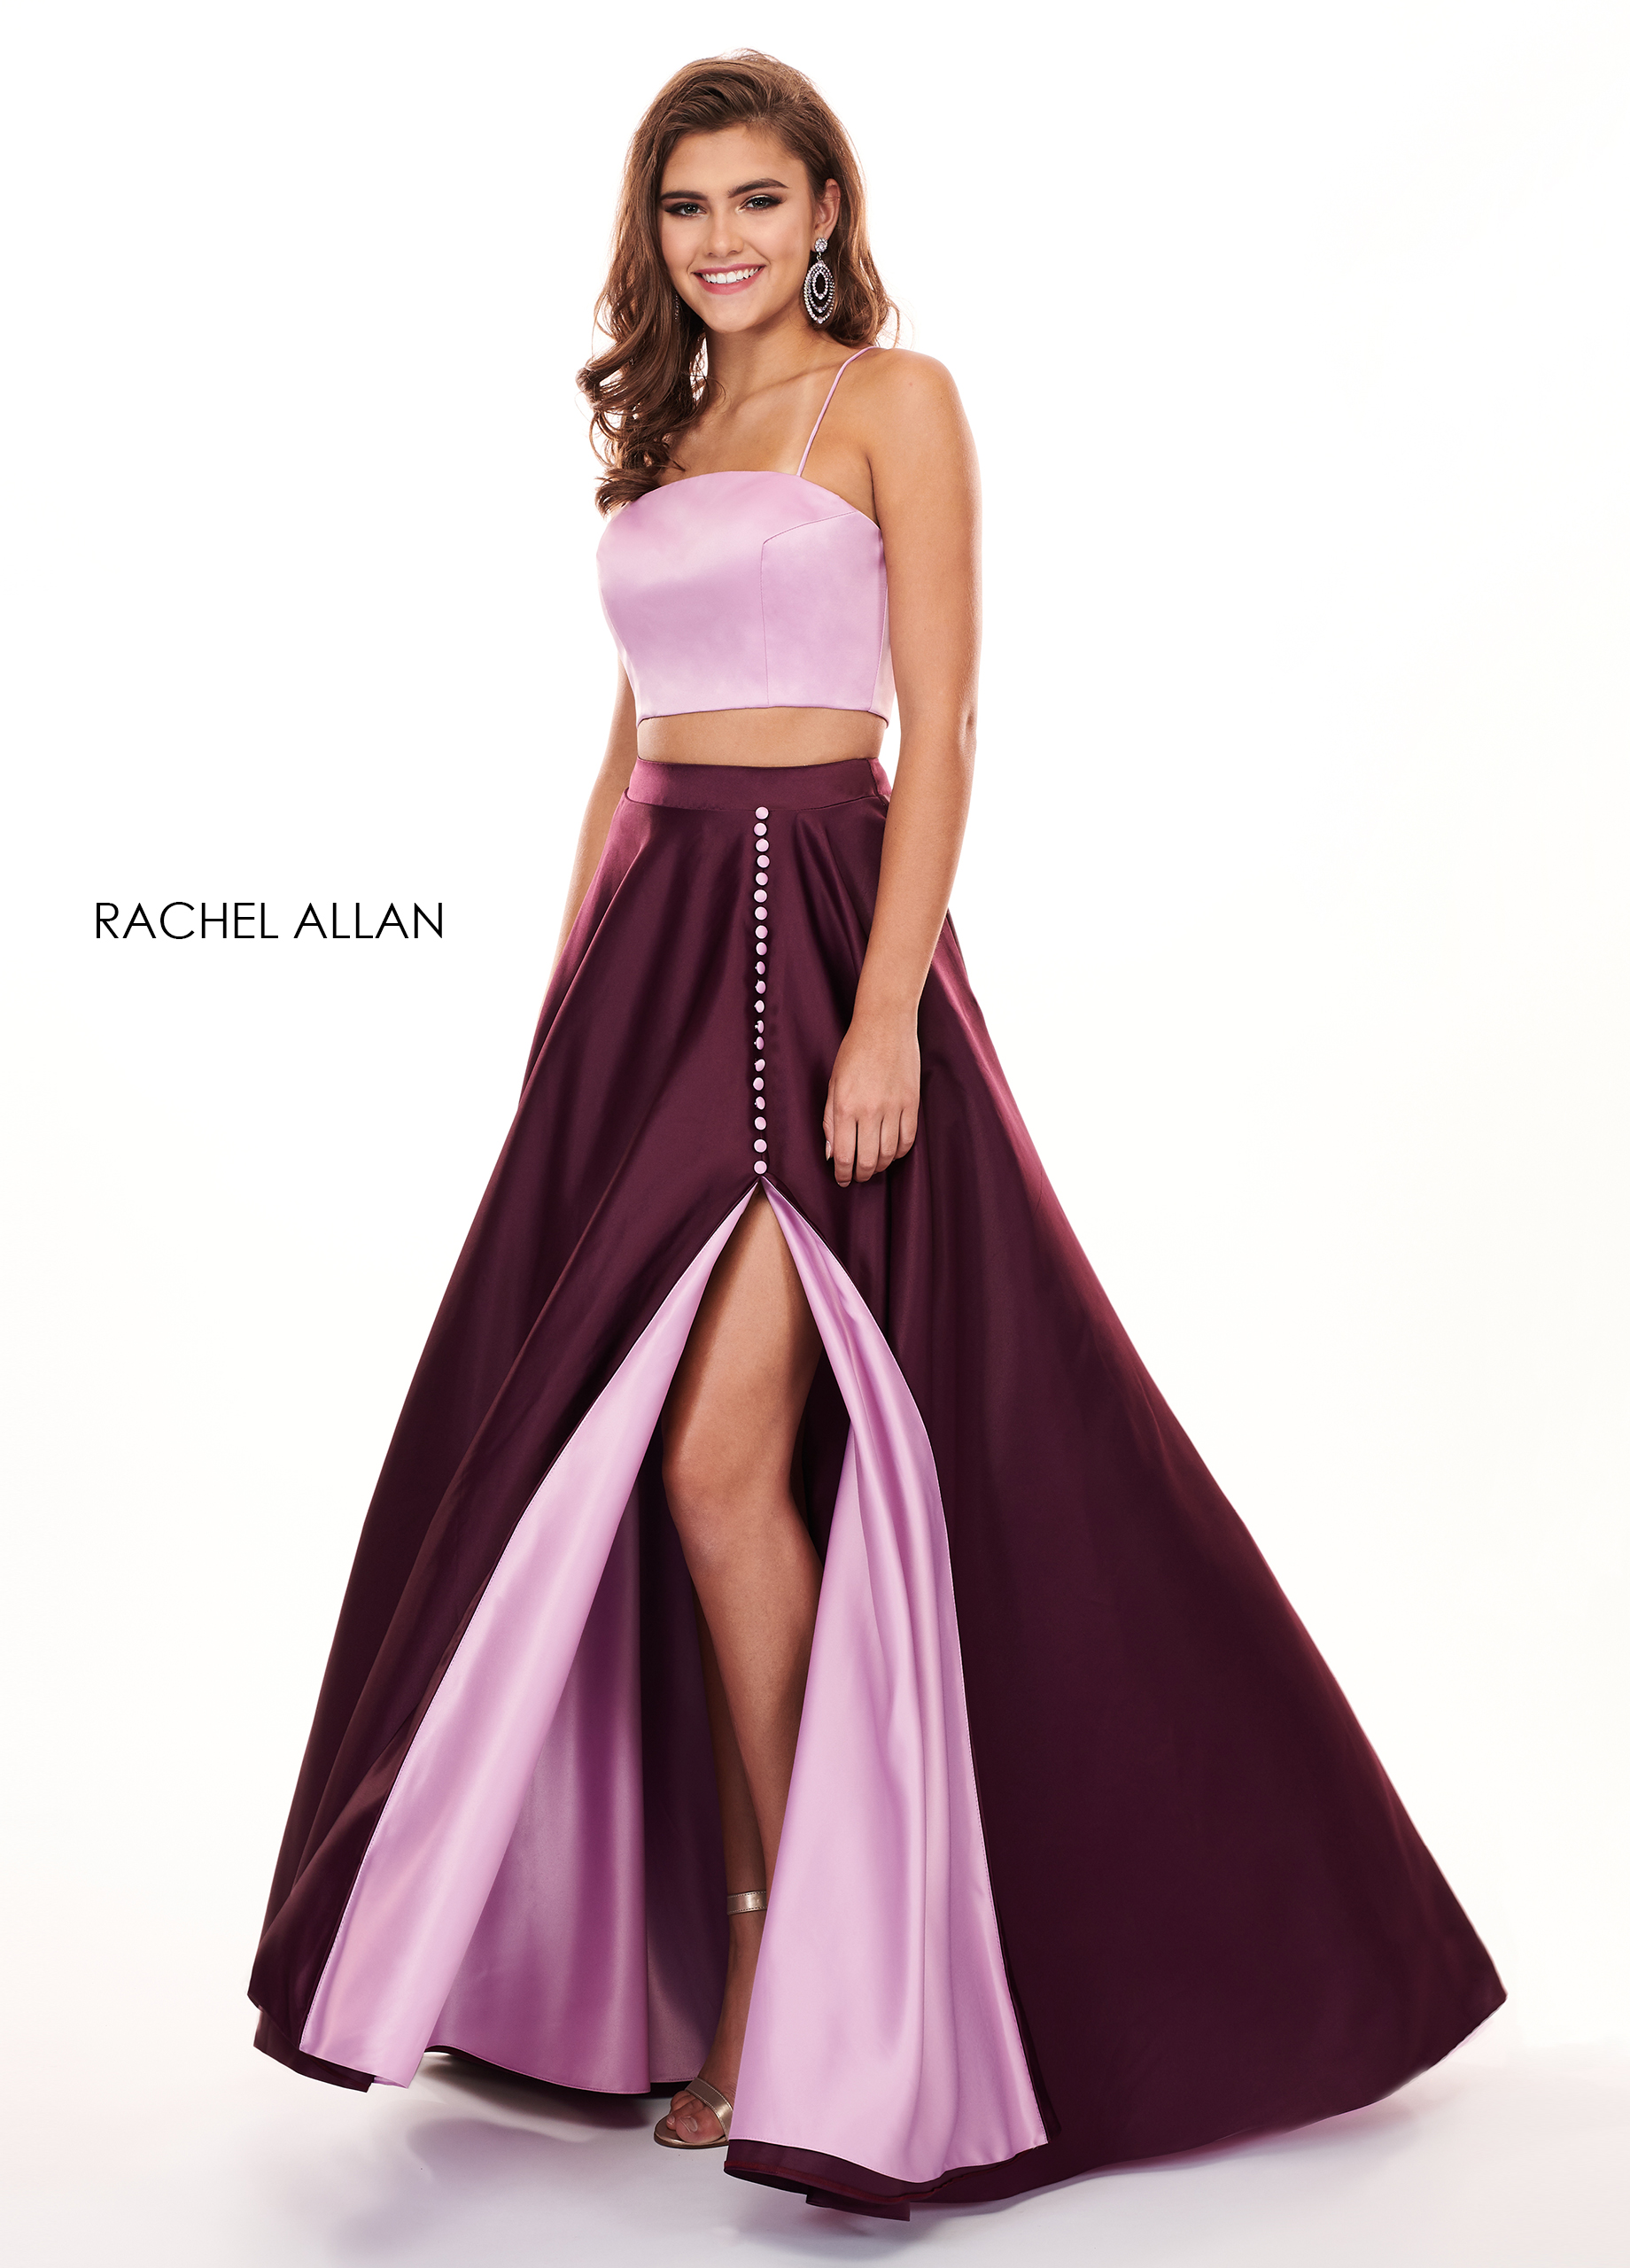 Strappy Two-Piece Prom Dresses in Purple Color